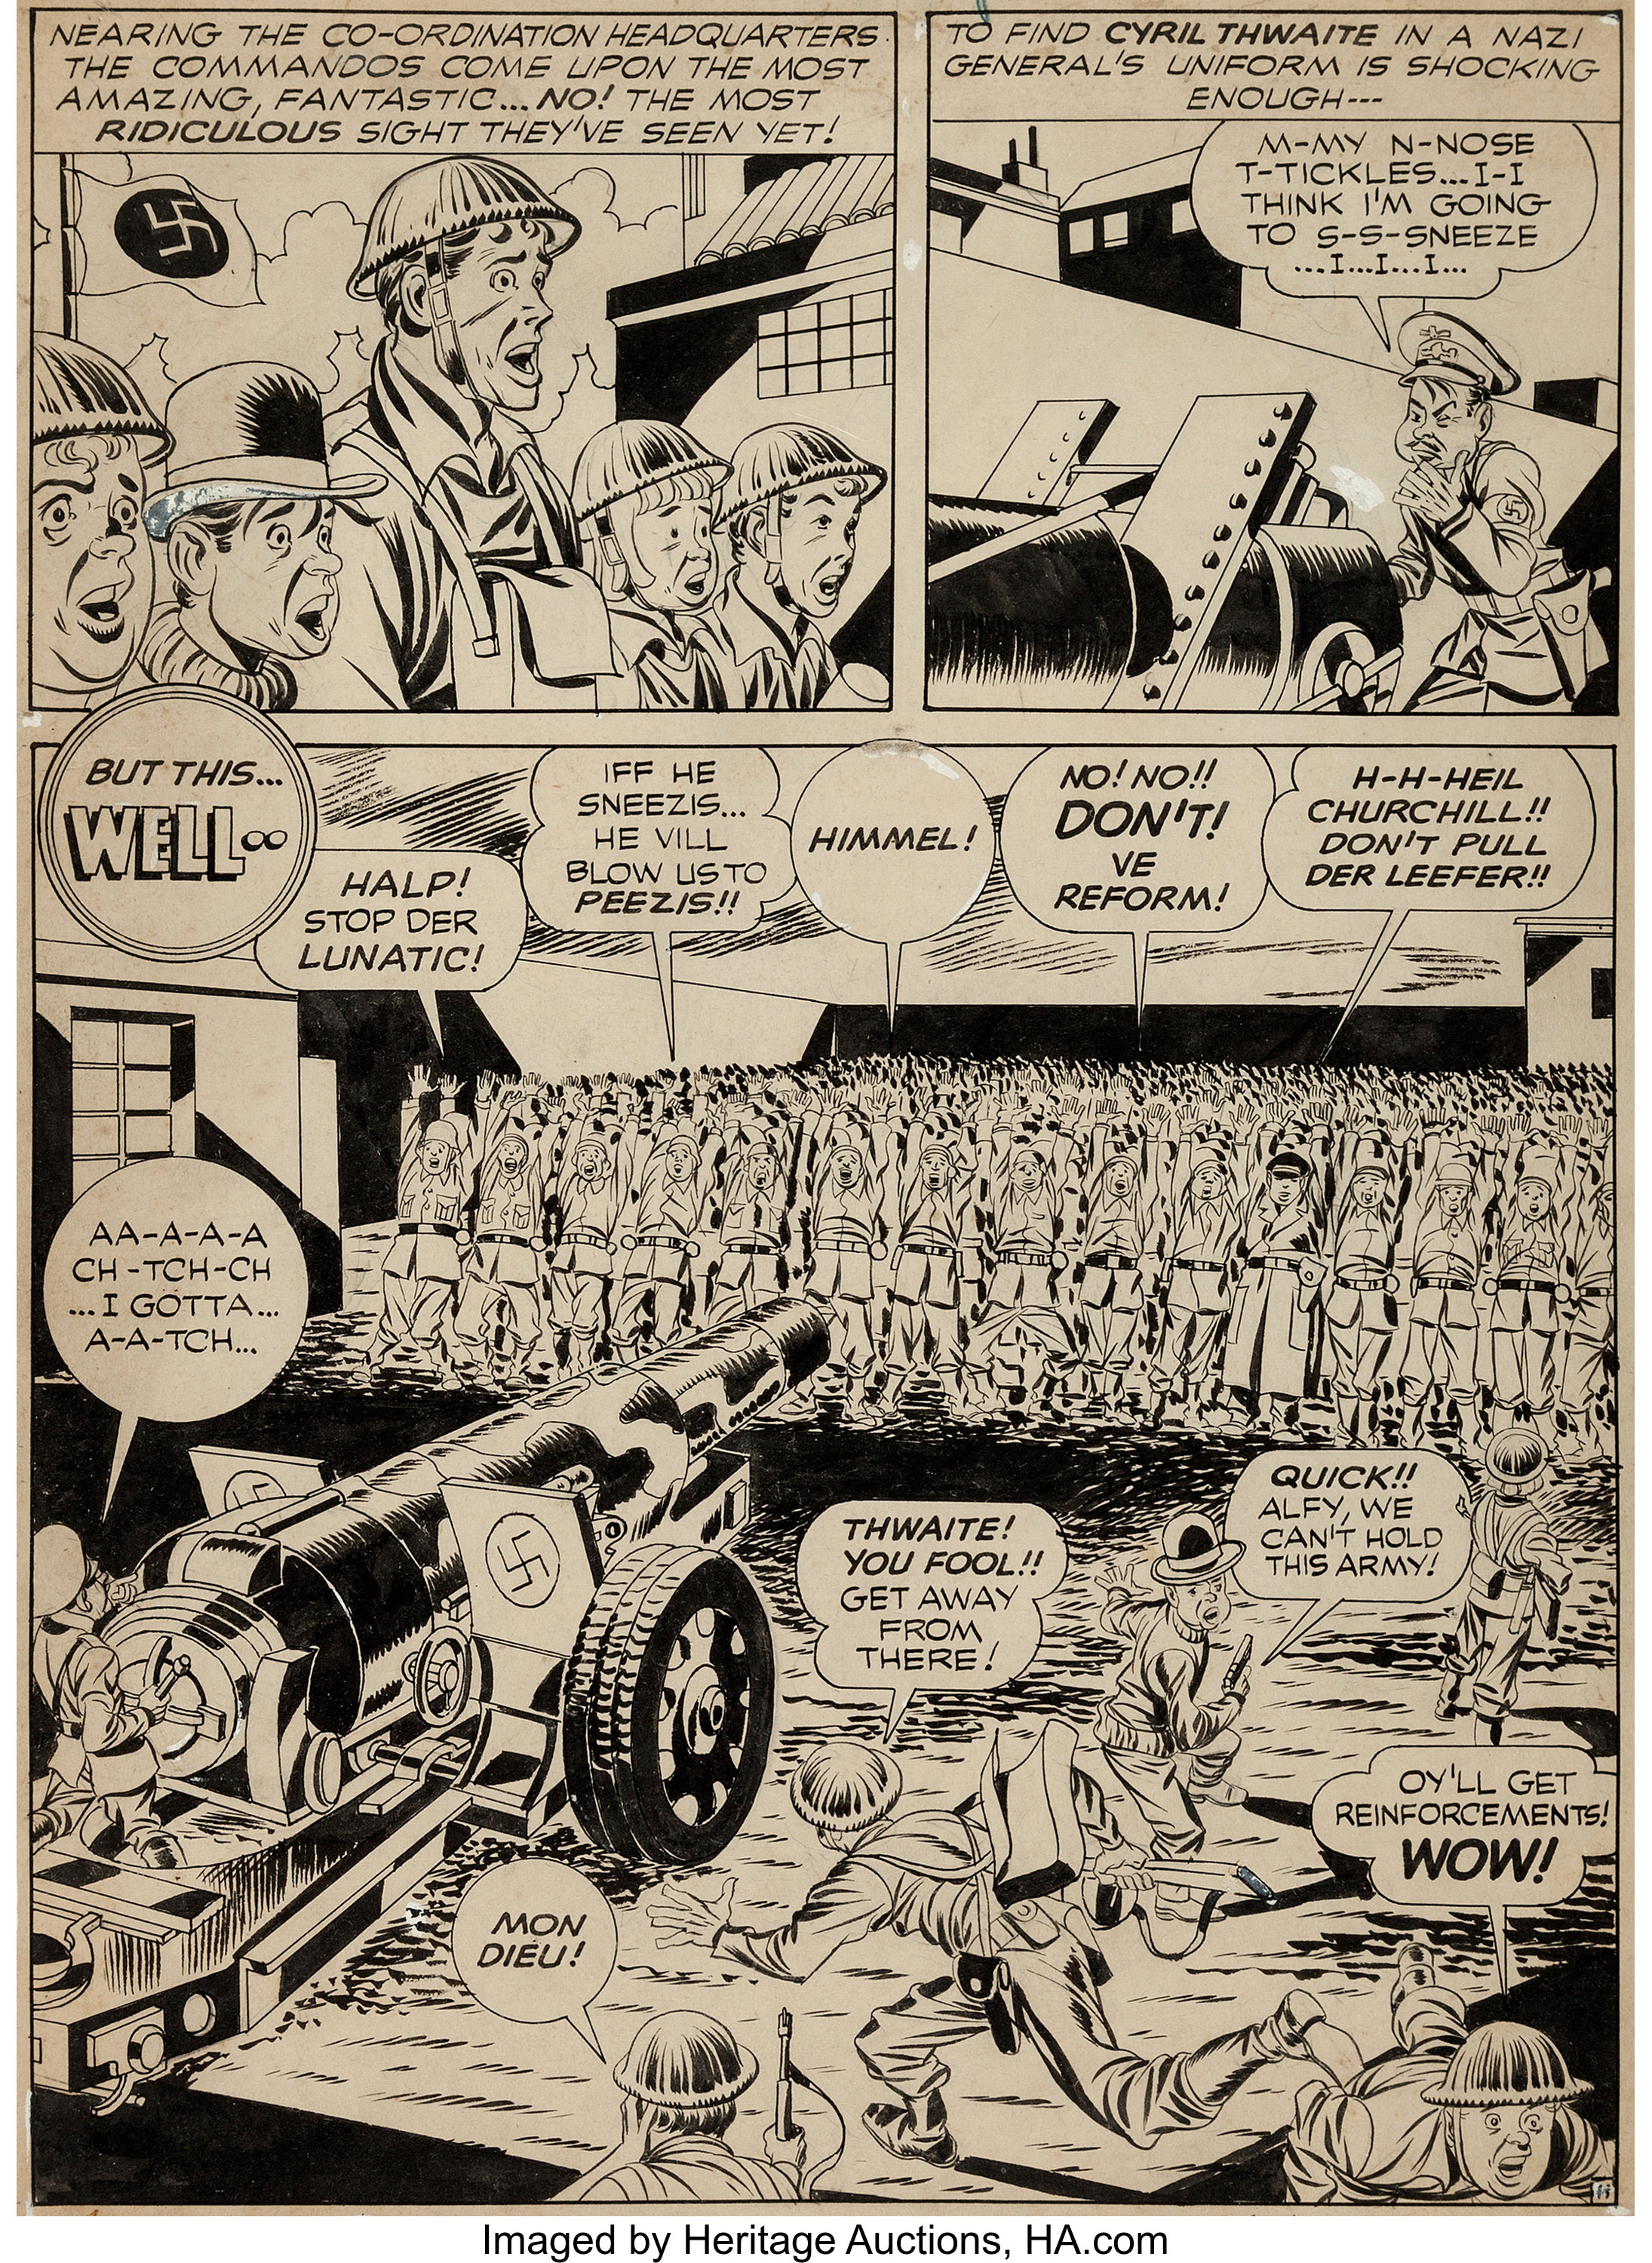 Jack Kirby And Joe Simon Boy Commandos 3 Story Page 11 Original Lot 92058 Heritage Auctions